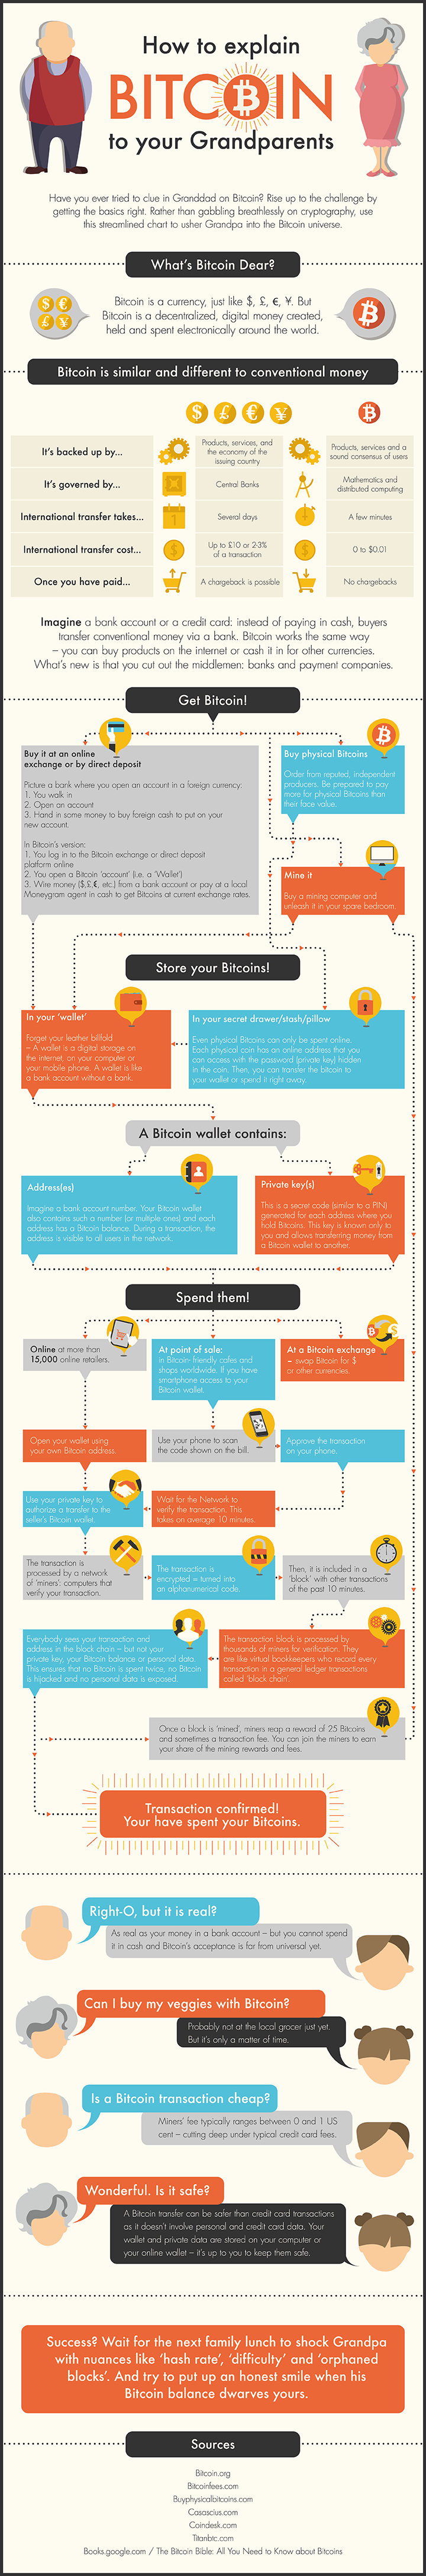 infographic: How to Explain Bitcoin to your Grandparents